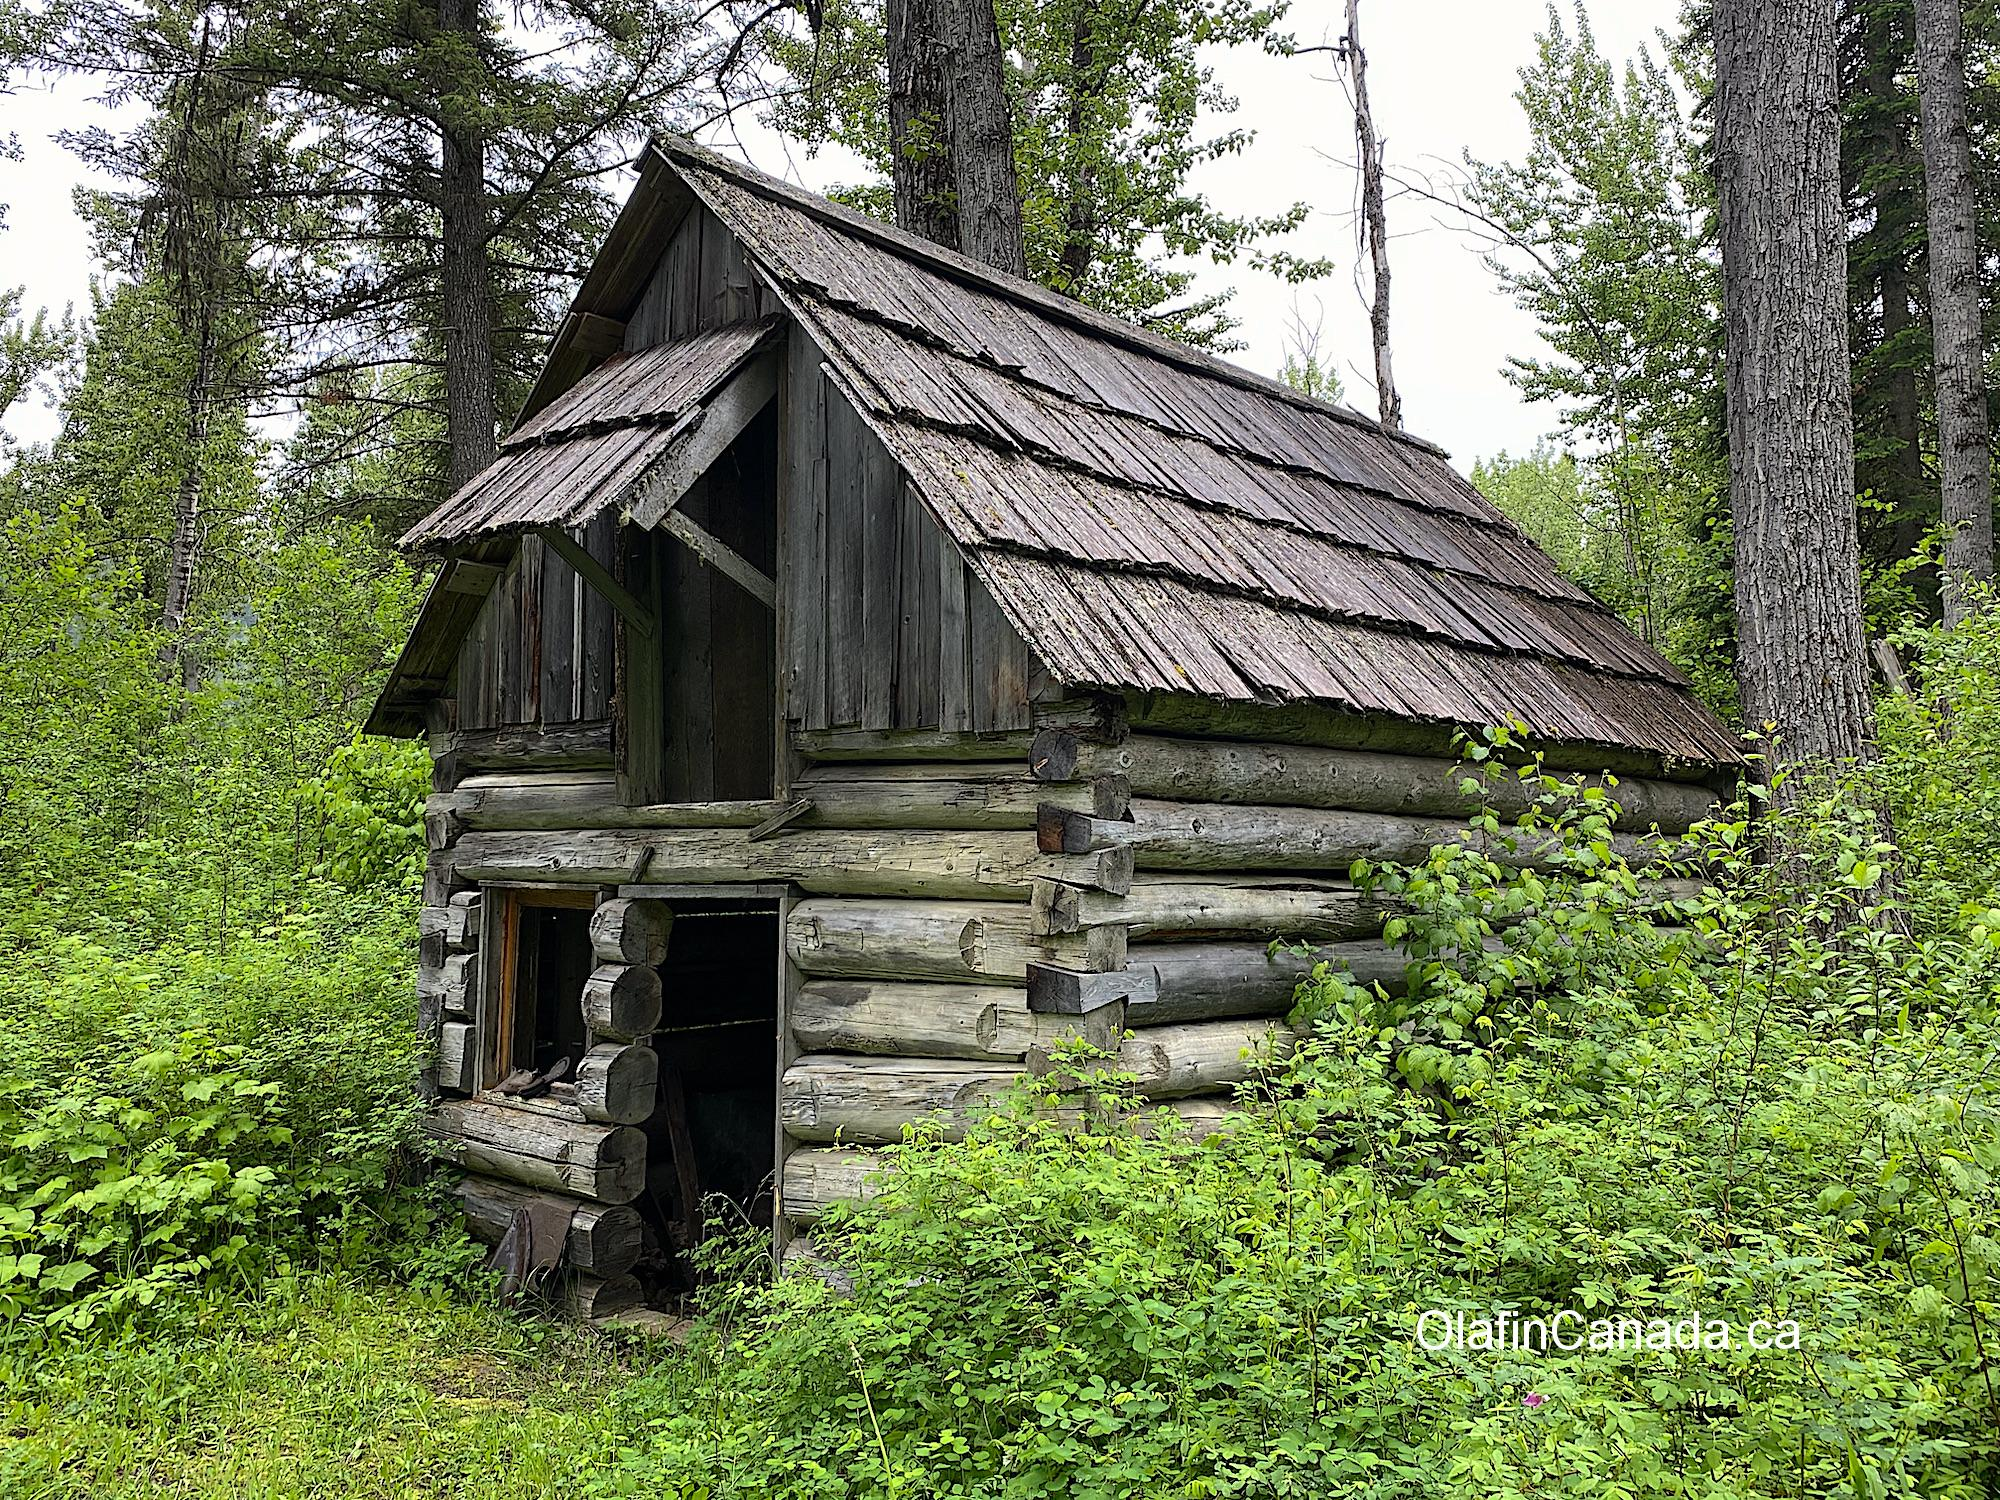 Miner's cabin aka Shoe Store in Quesnel Forks Old grave at the cemetery in Quesnel Forks #olafincanada #britishcolumbia #discoverbc #abandonedbc #cariboo #quesnelforks